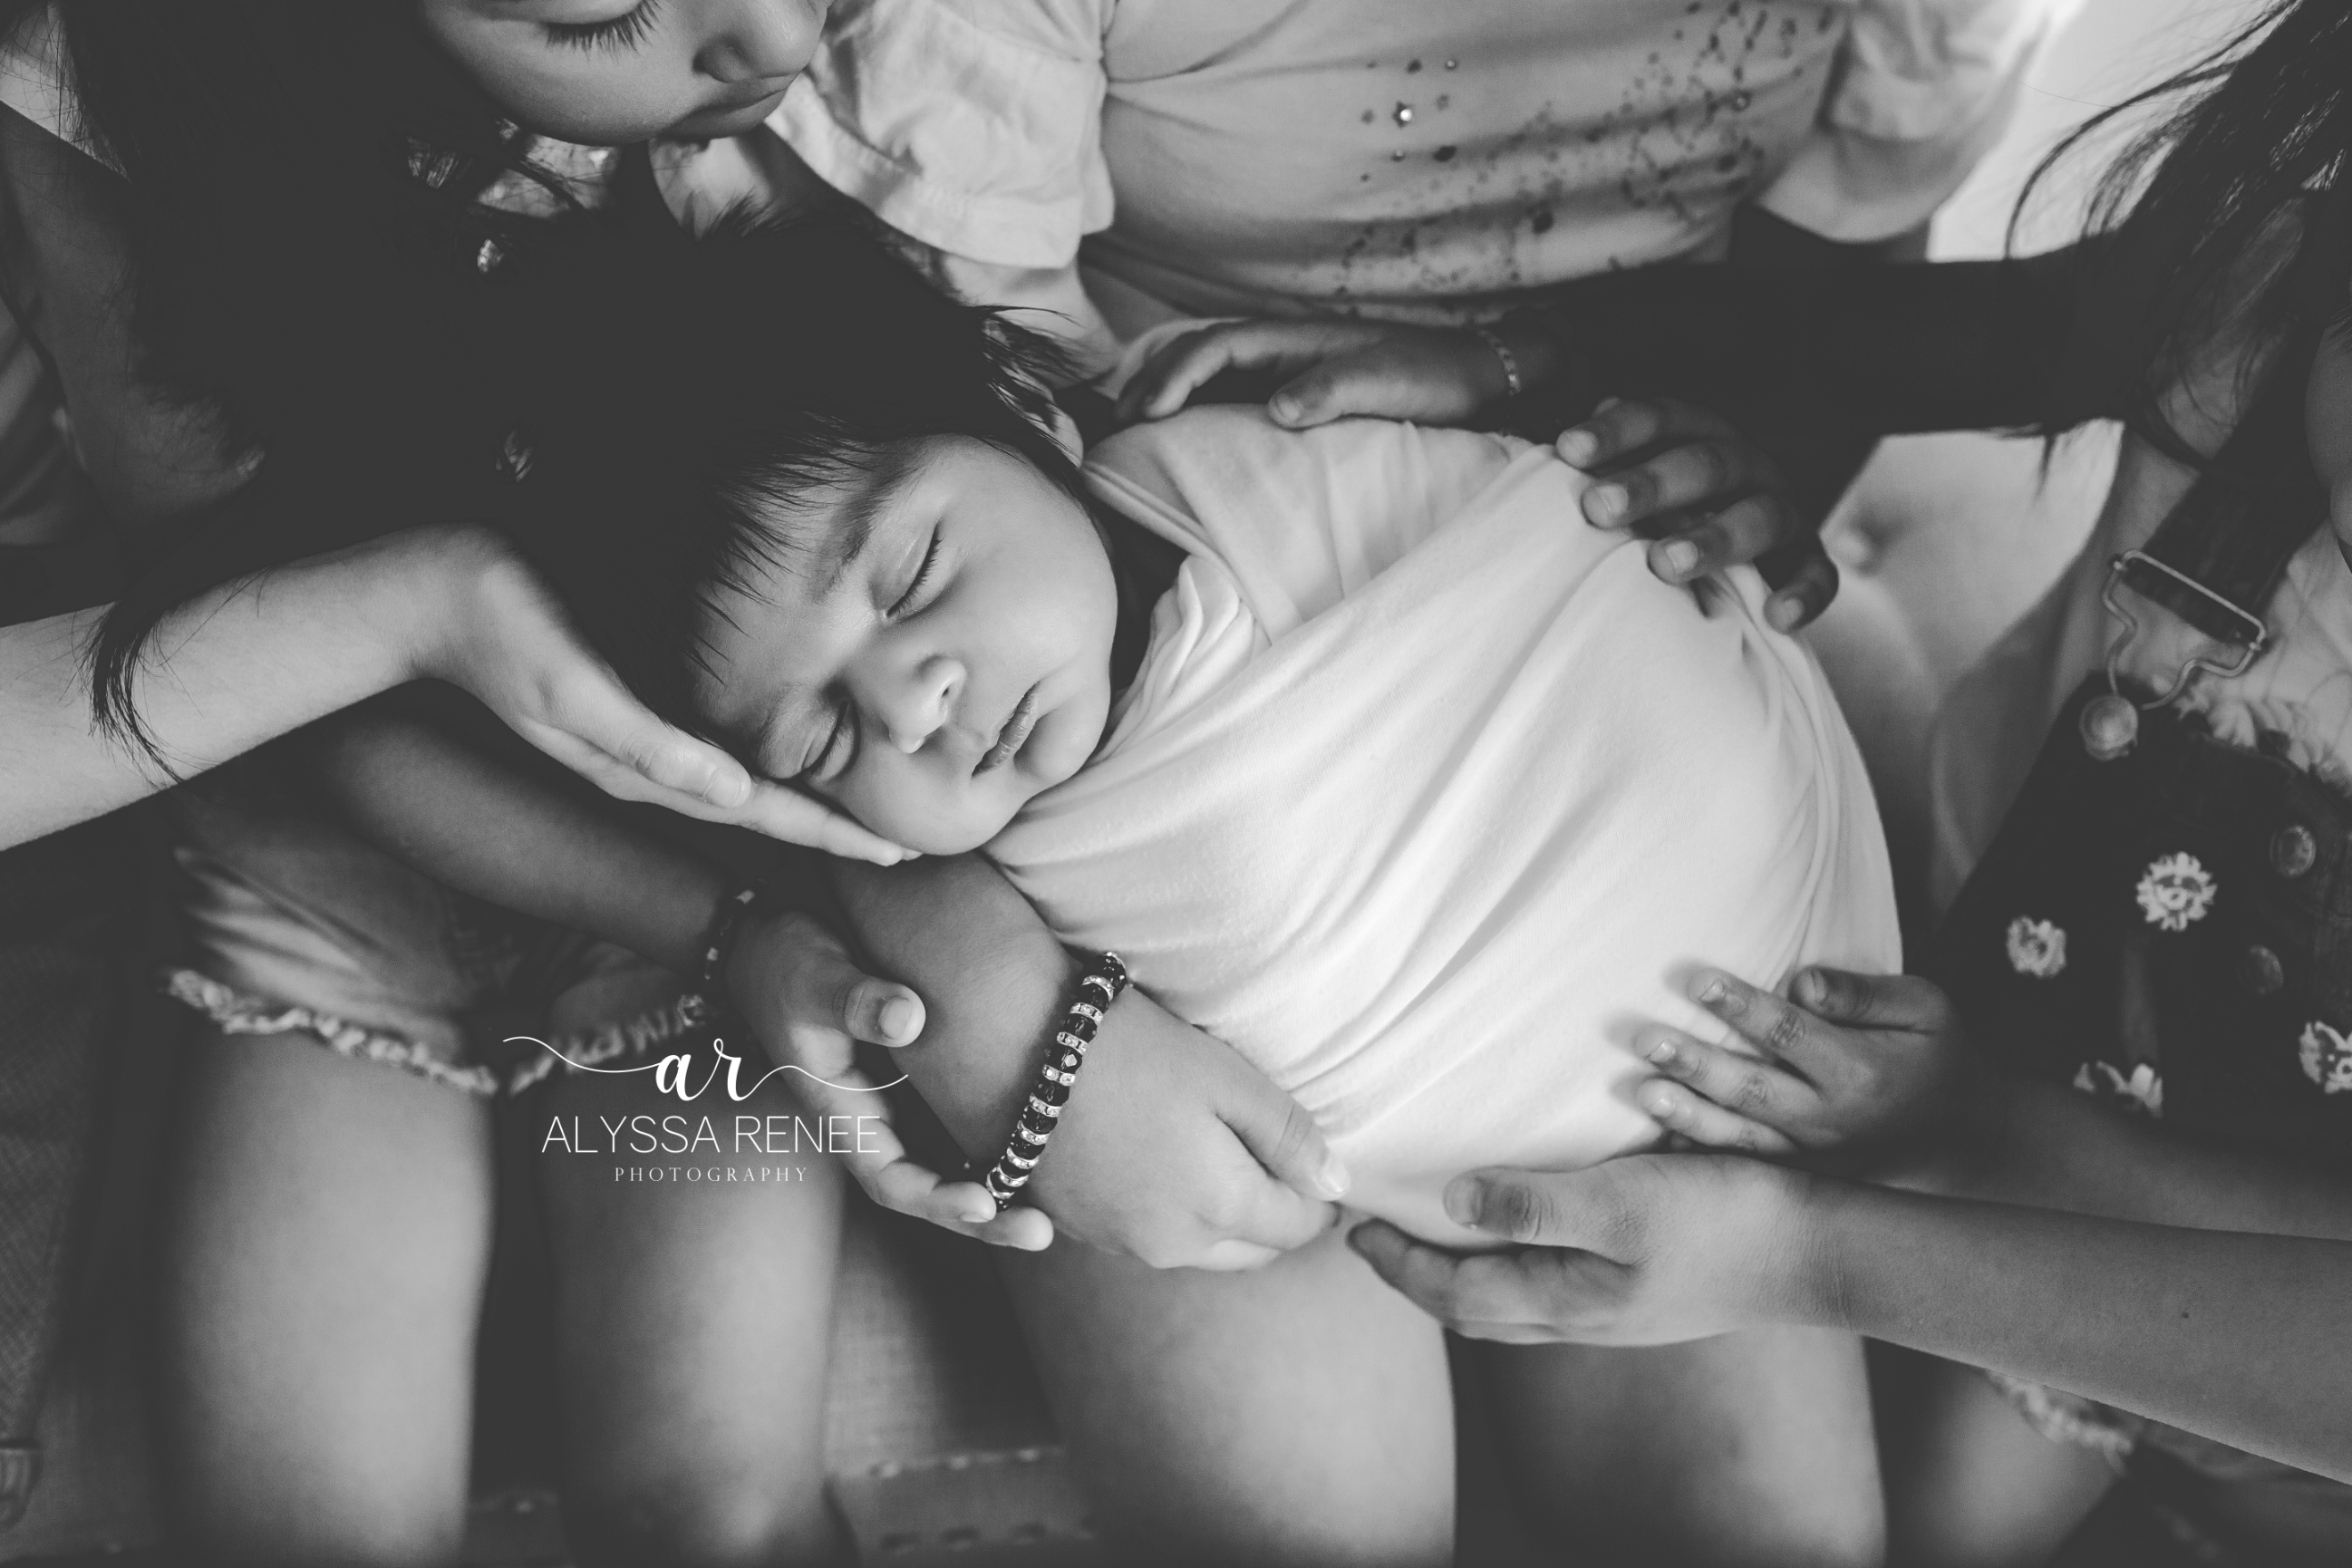 Black and white image of newborn close up with siblings hands surrounding baby